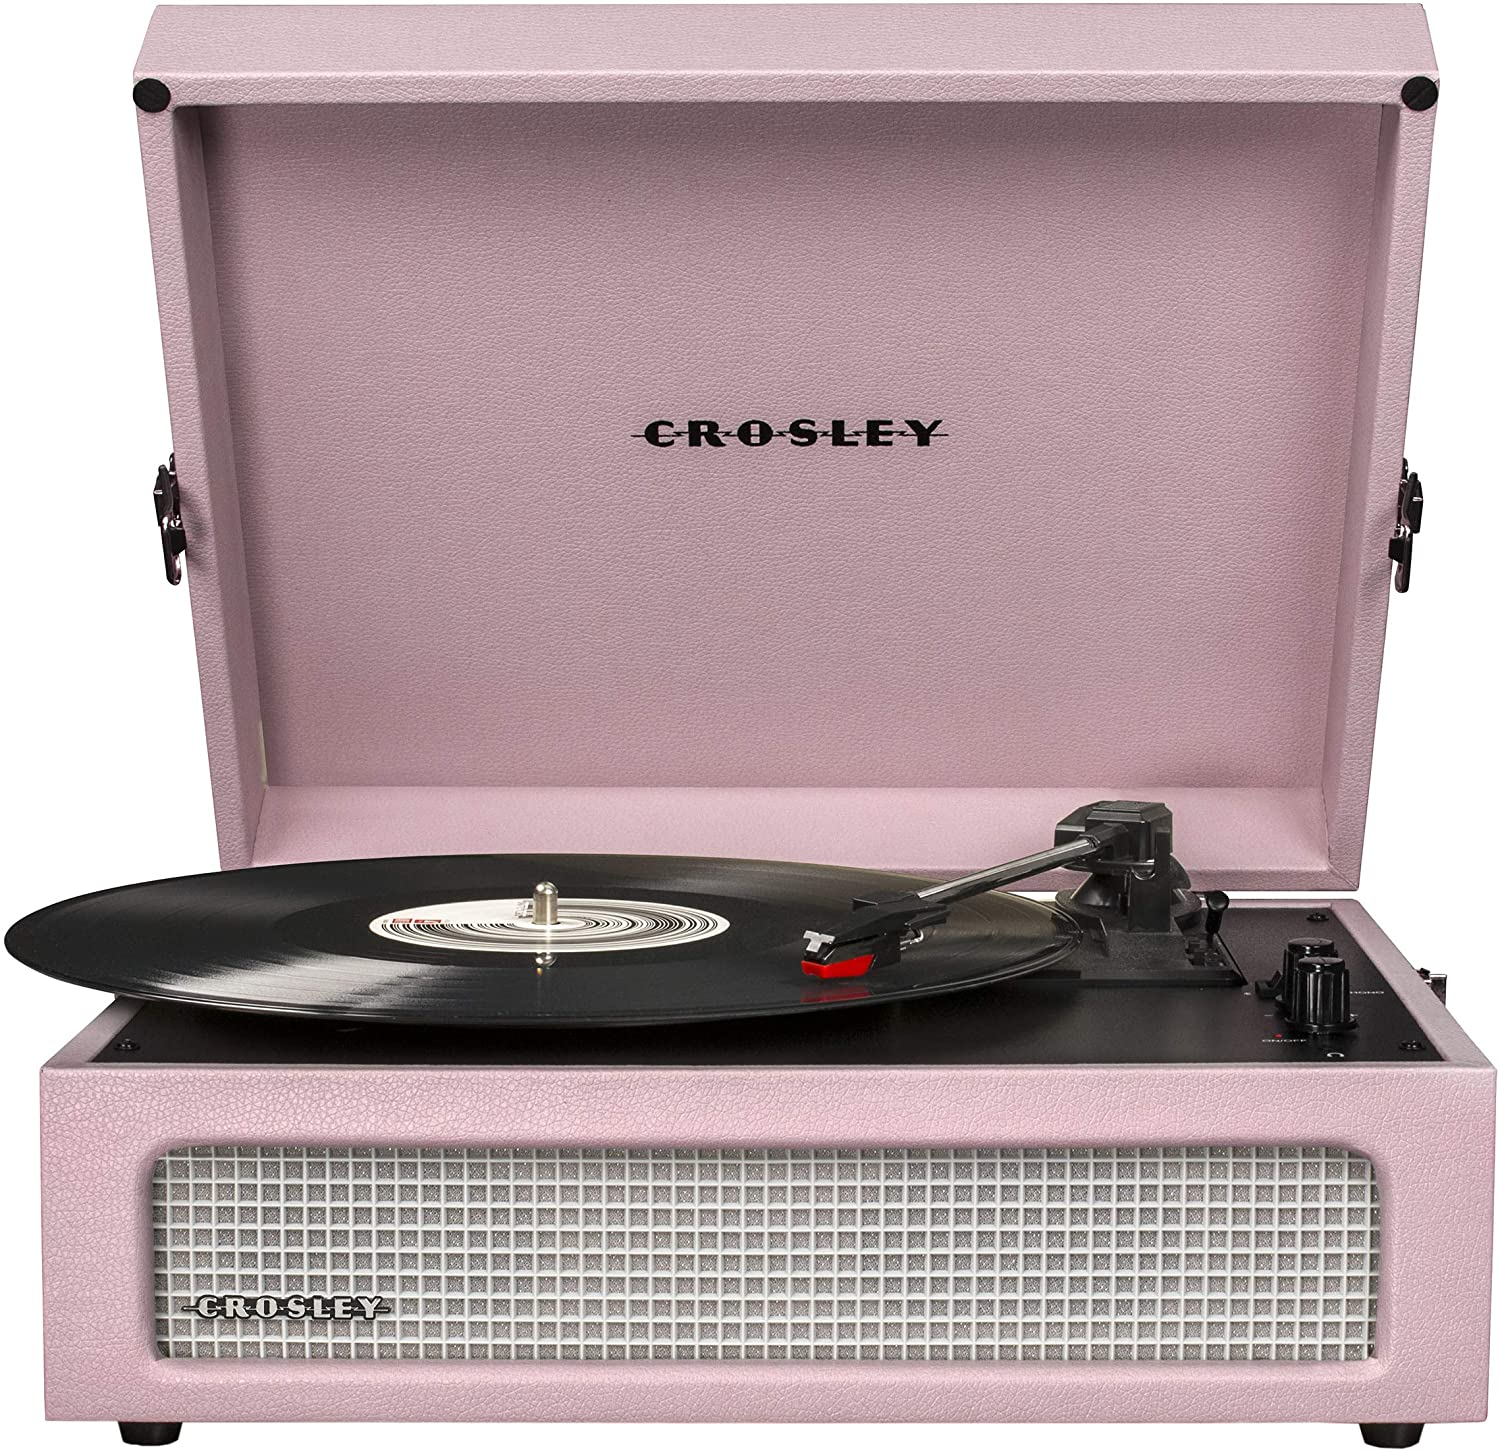 Amazon Com Crosley Cr8017a Am Voyager Vintage Portable Turntable With Bluetooth Receiver And Built In Speakers Amethyst Electronics